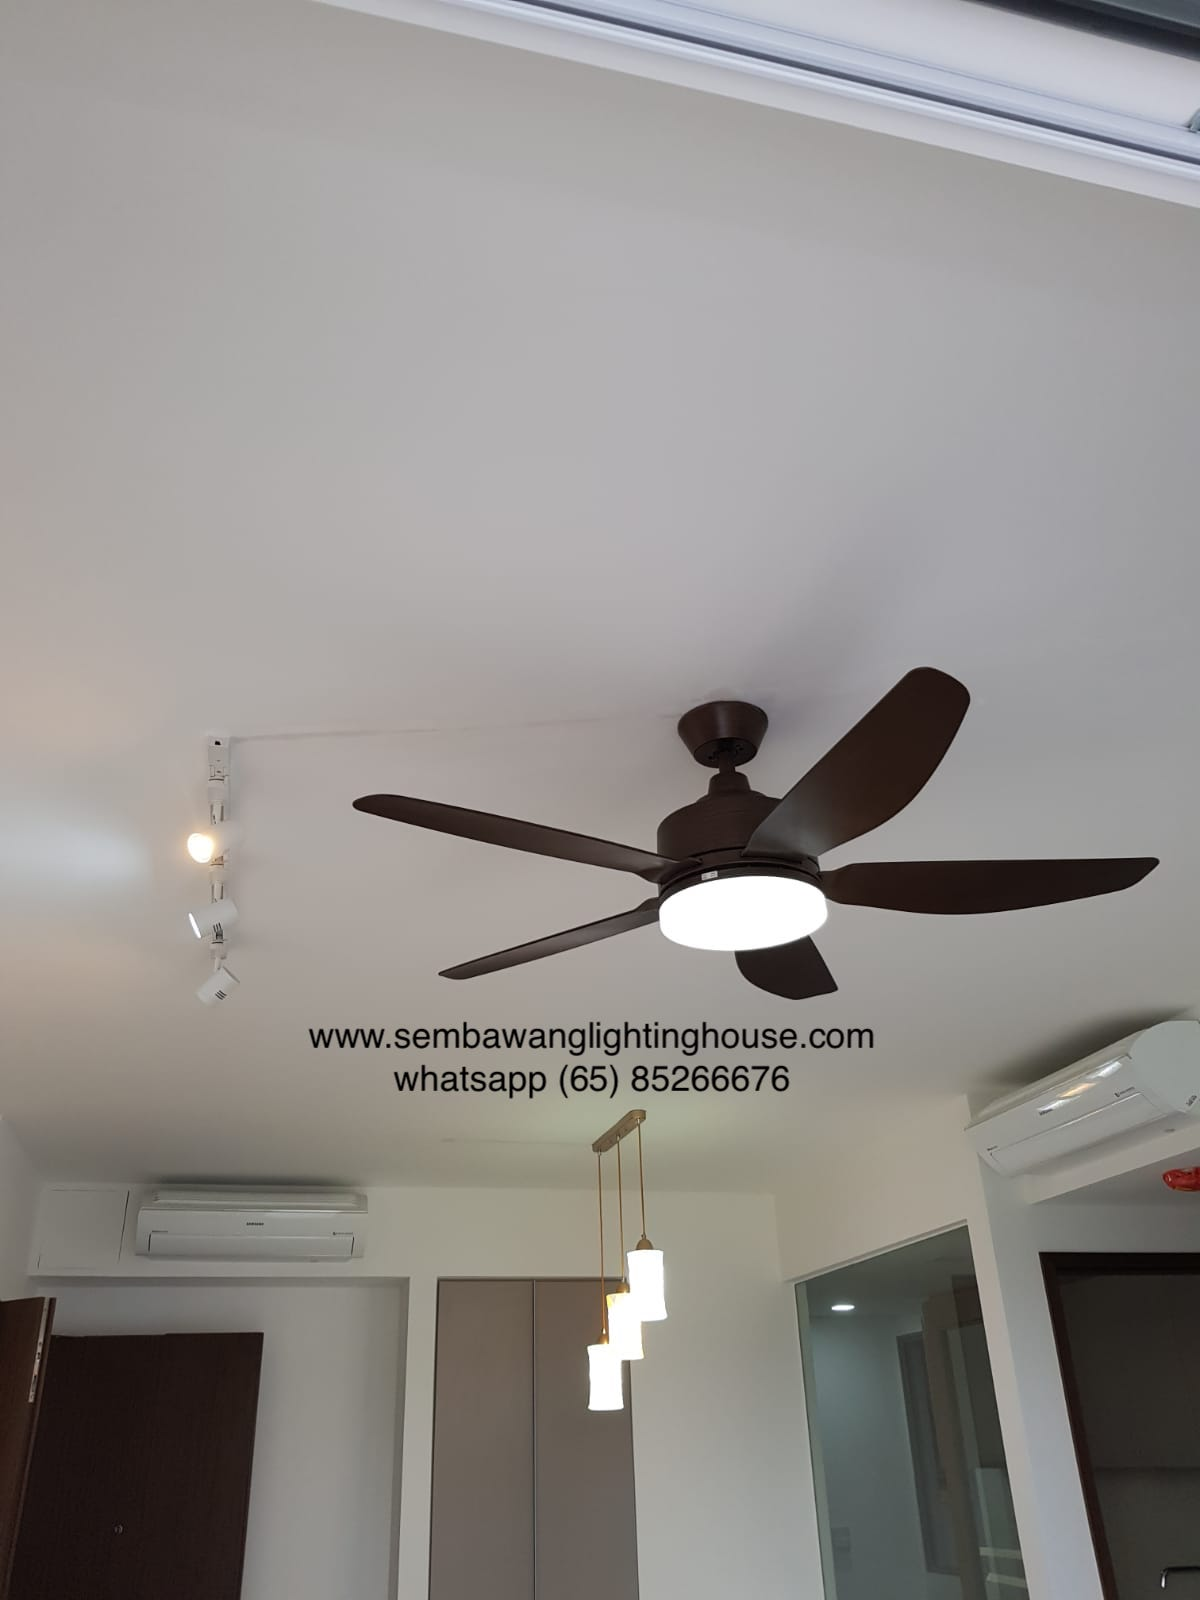 crestar-airis-5-blade-black-led-ceiling-fan-sample-sembawang-lighting-house-01.jpg